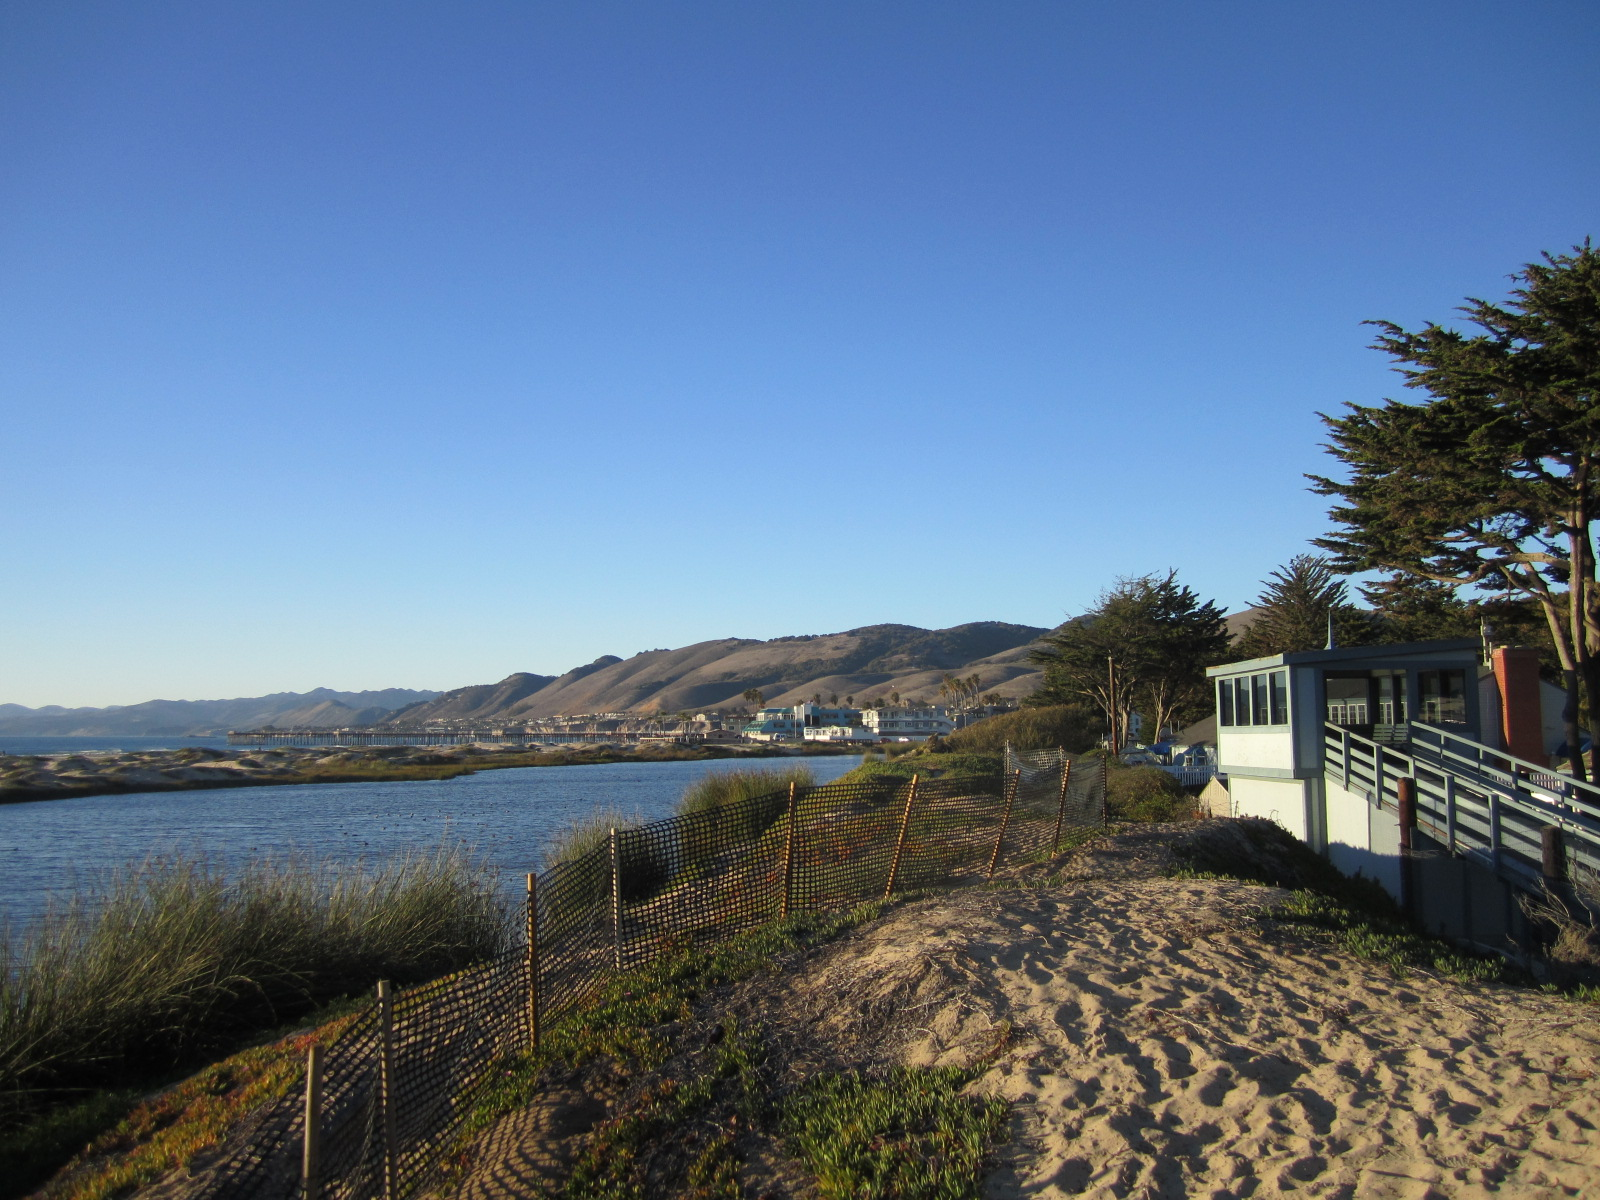 Lagoon at Pismo Coast Village